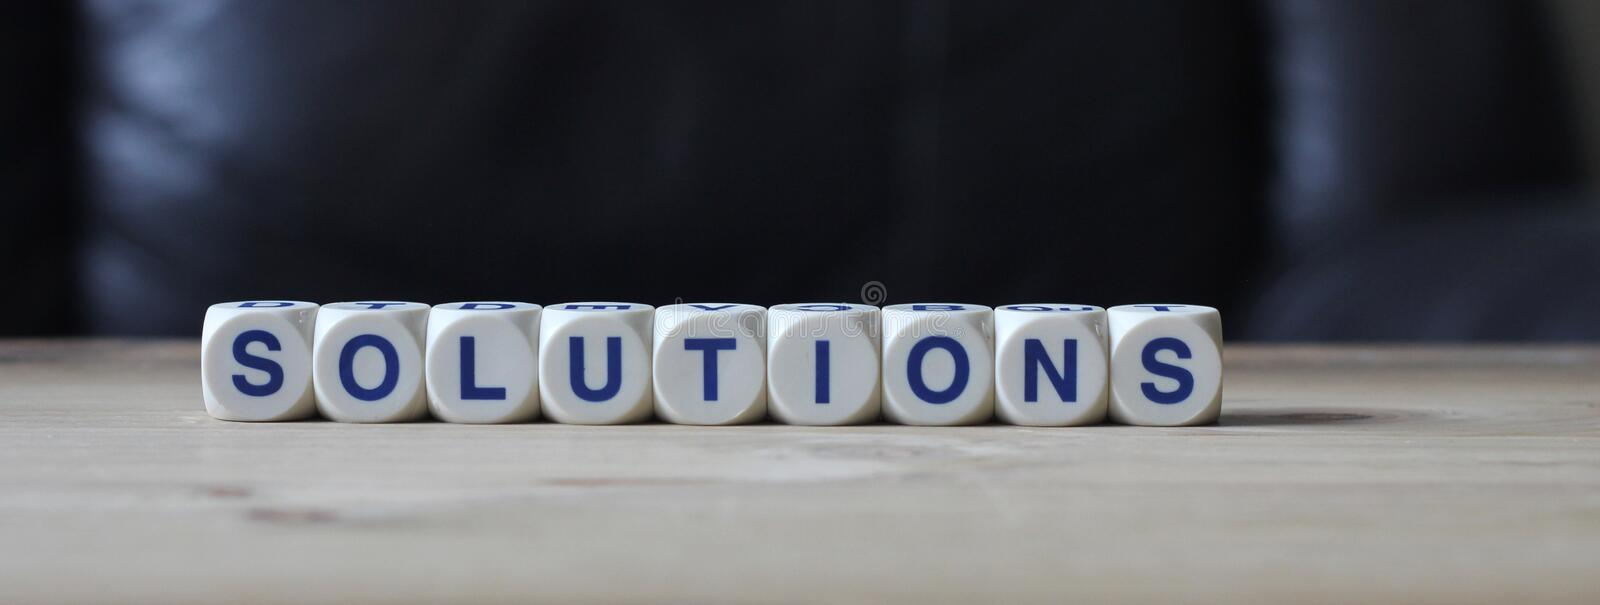 Solutions. Letters cube wordings on wood background royalty free stock image